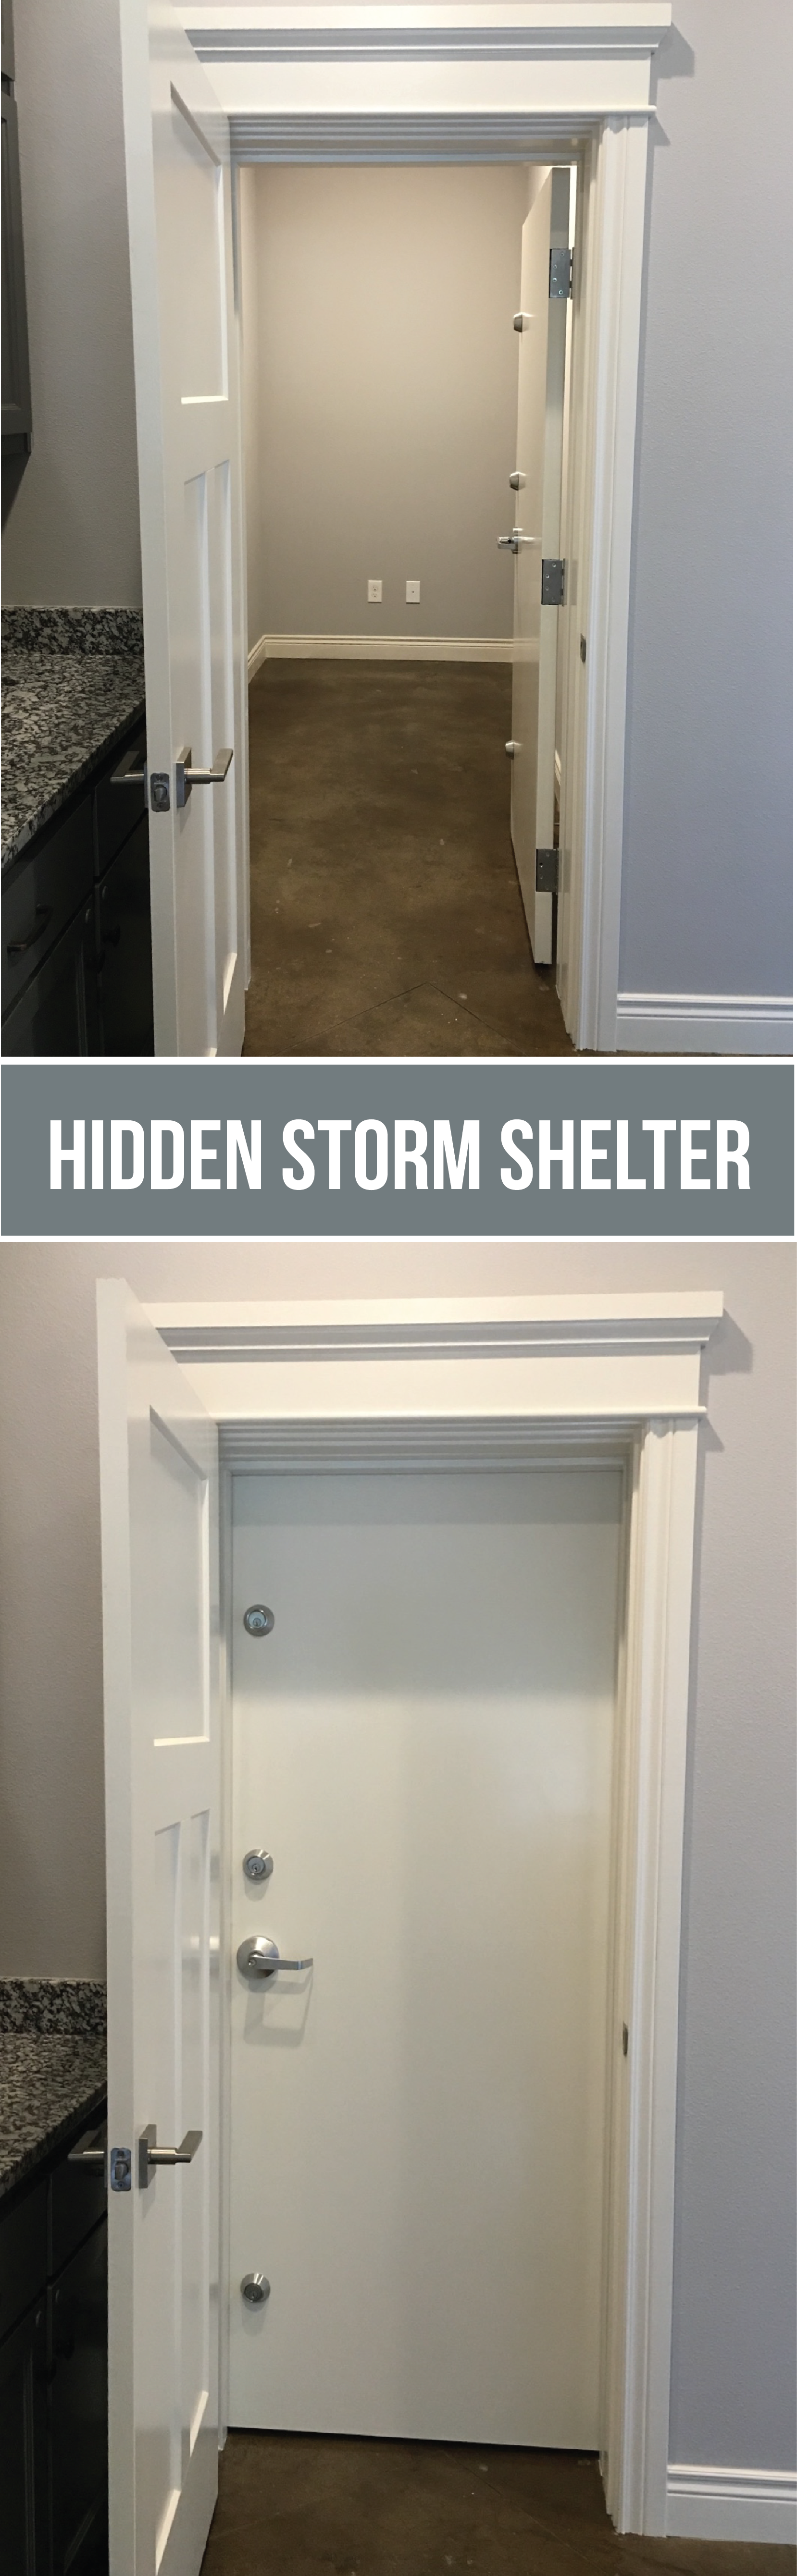 Create A Hidden Storm Shelter/safe Room For Your Family By Adding An Extra  Door